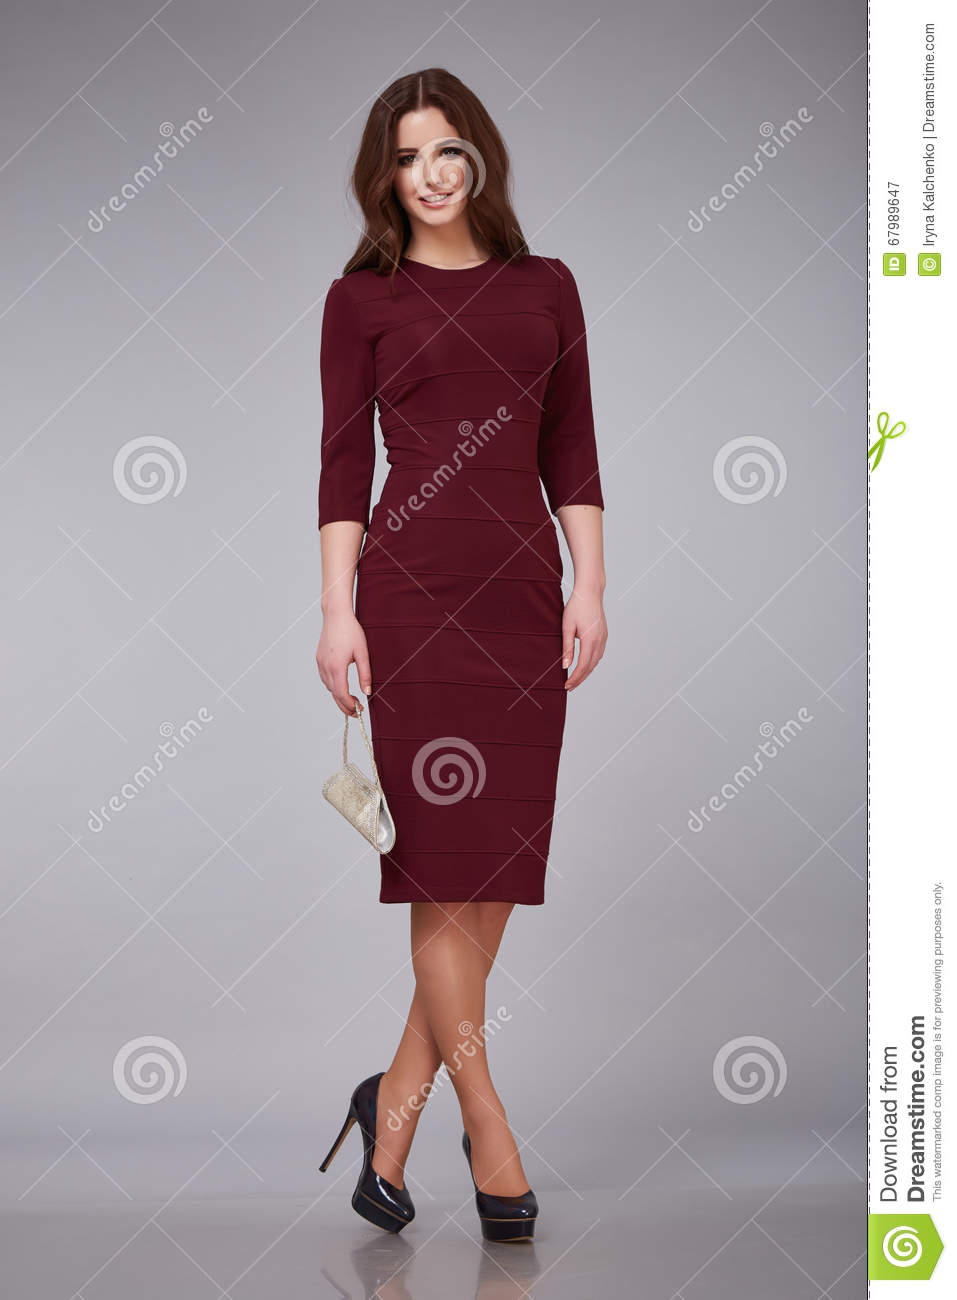 Beautiful young woman lady stylish elegant fashionable dress, makeup and hair style for the evening business meeting walk dat